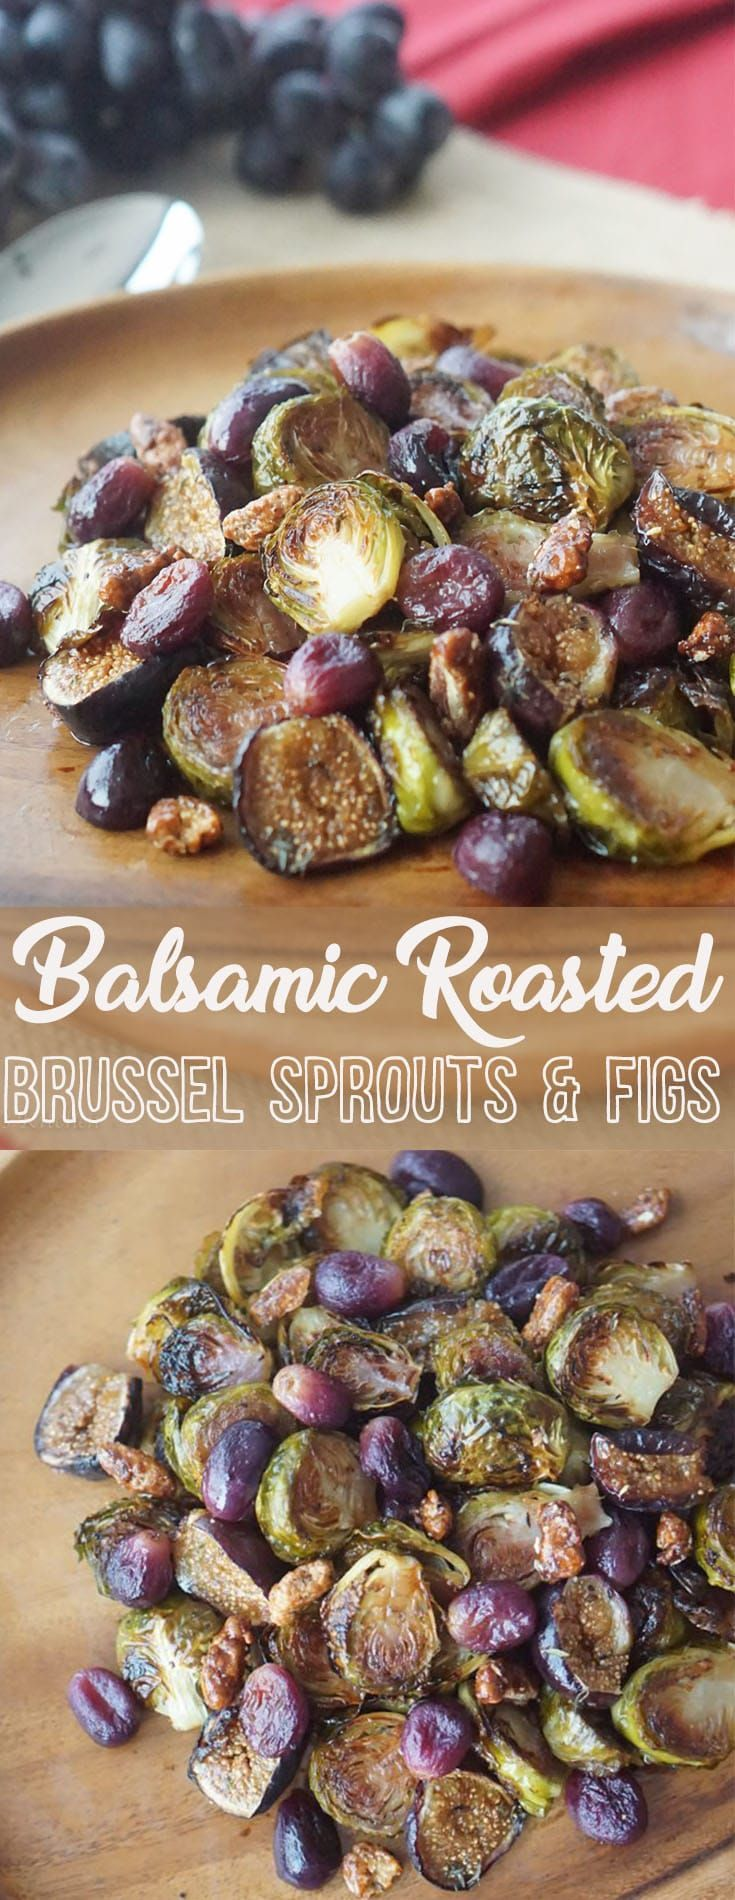 These Balsamic Roasted Brussel Sprouts with Grapes & Figs will make a perfect ea…   – Haus